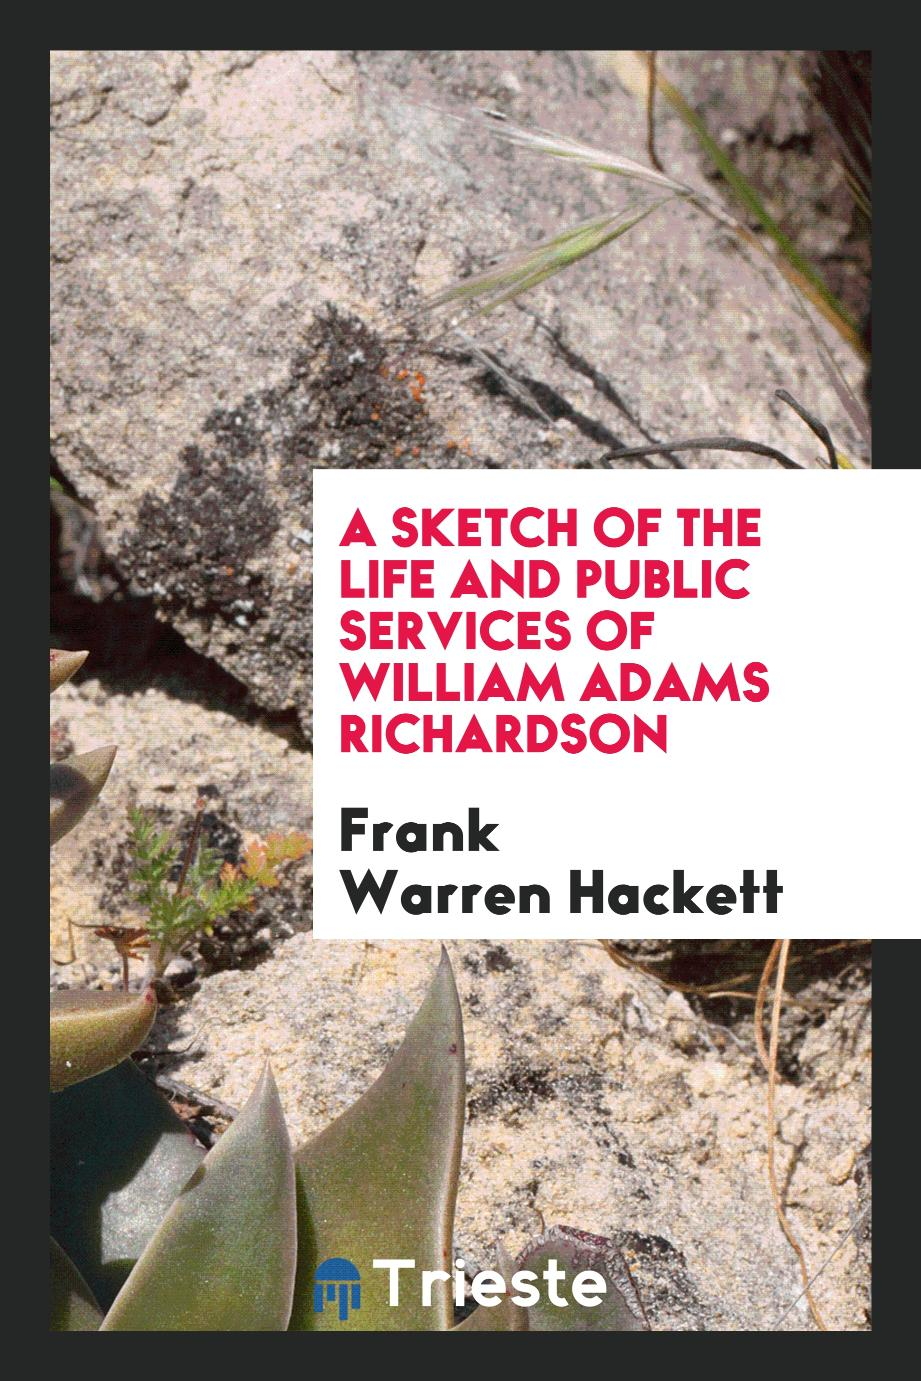 A sketch of the life and public services of William Adams Richardson